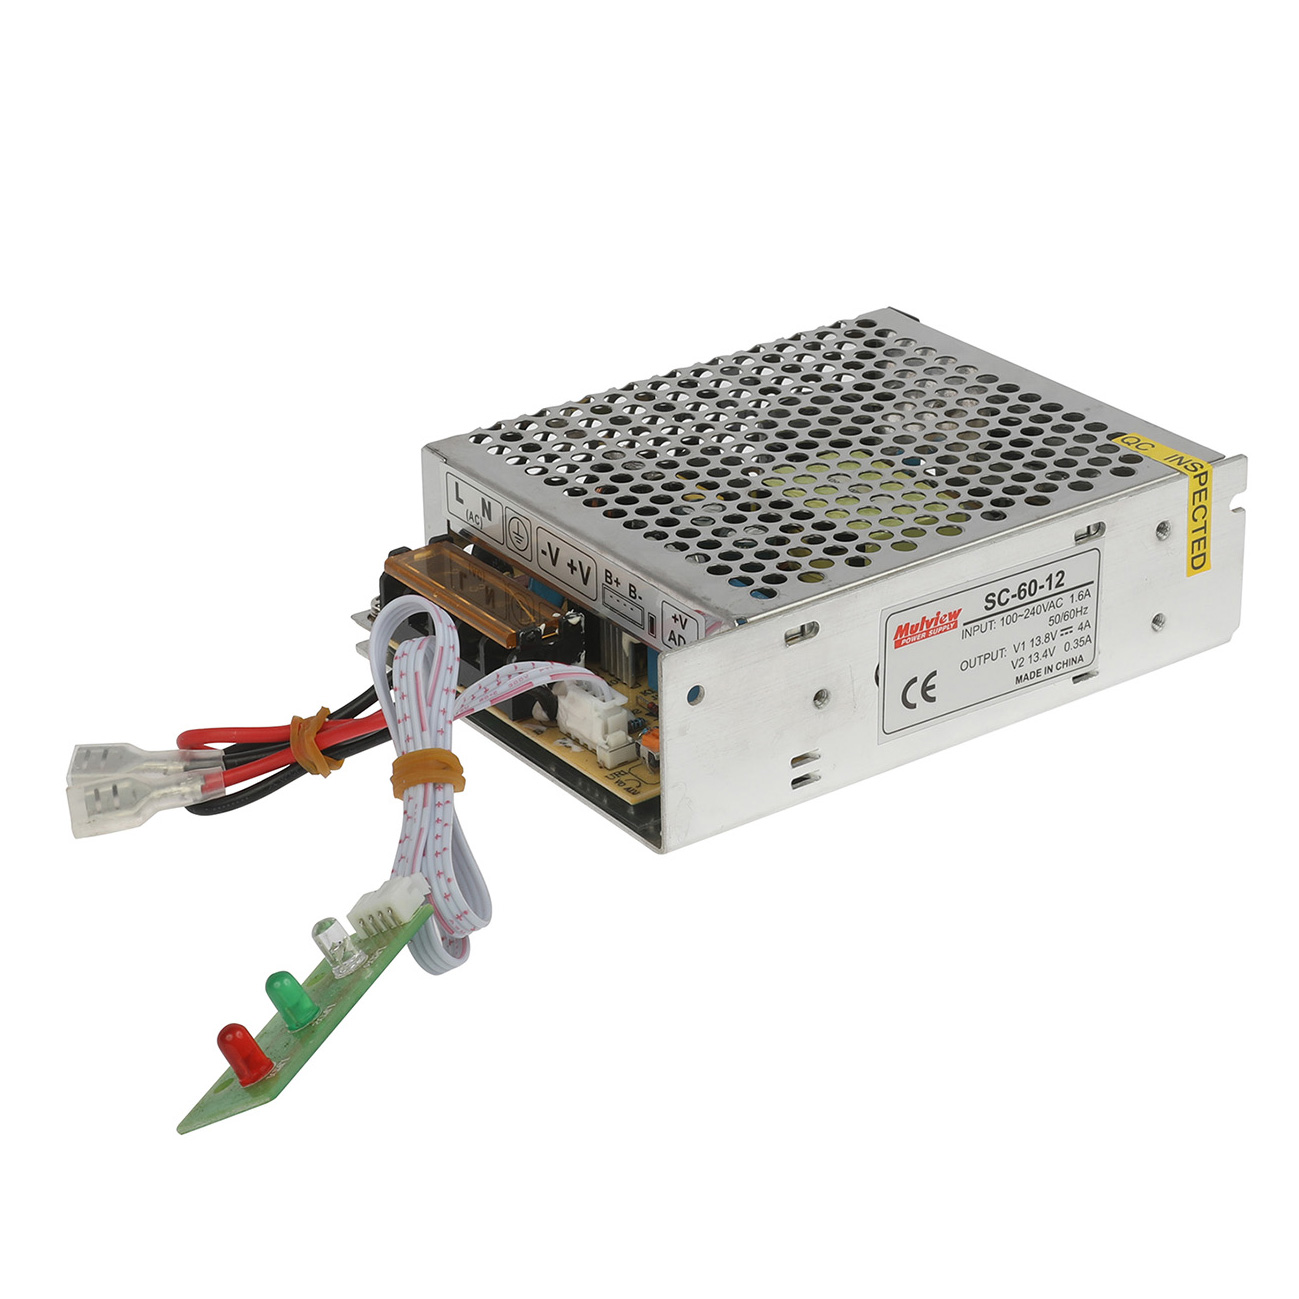 13.8V60W UPS power supply